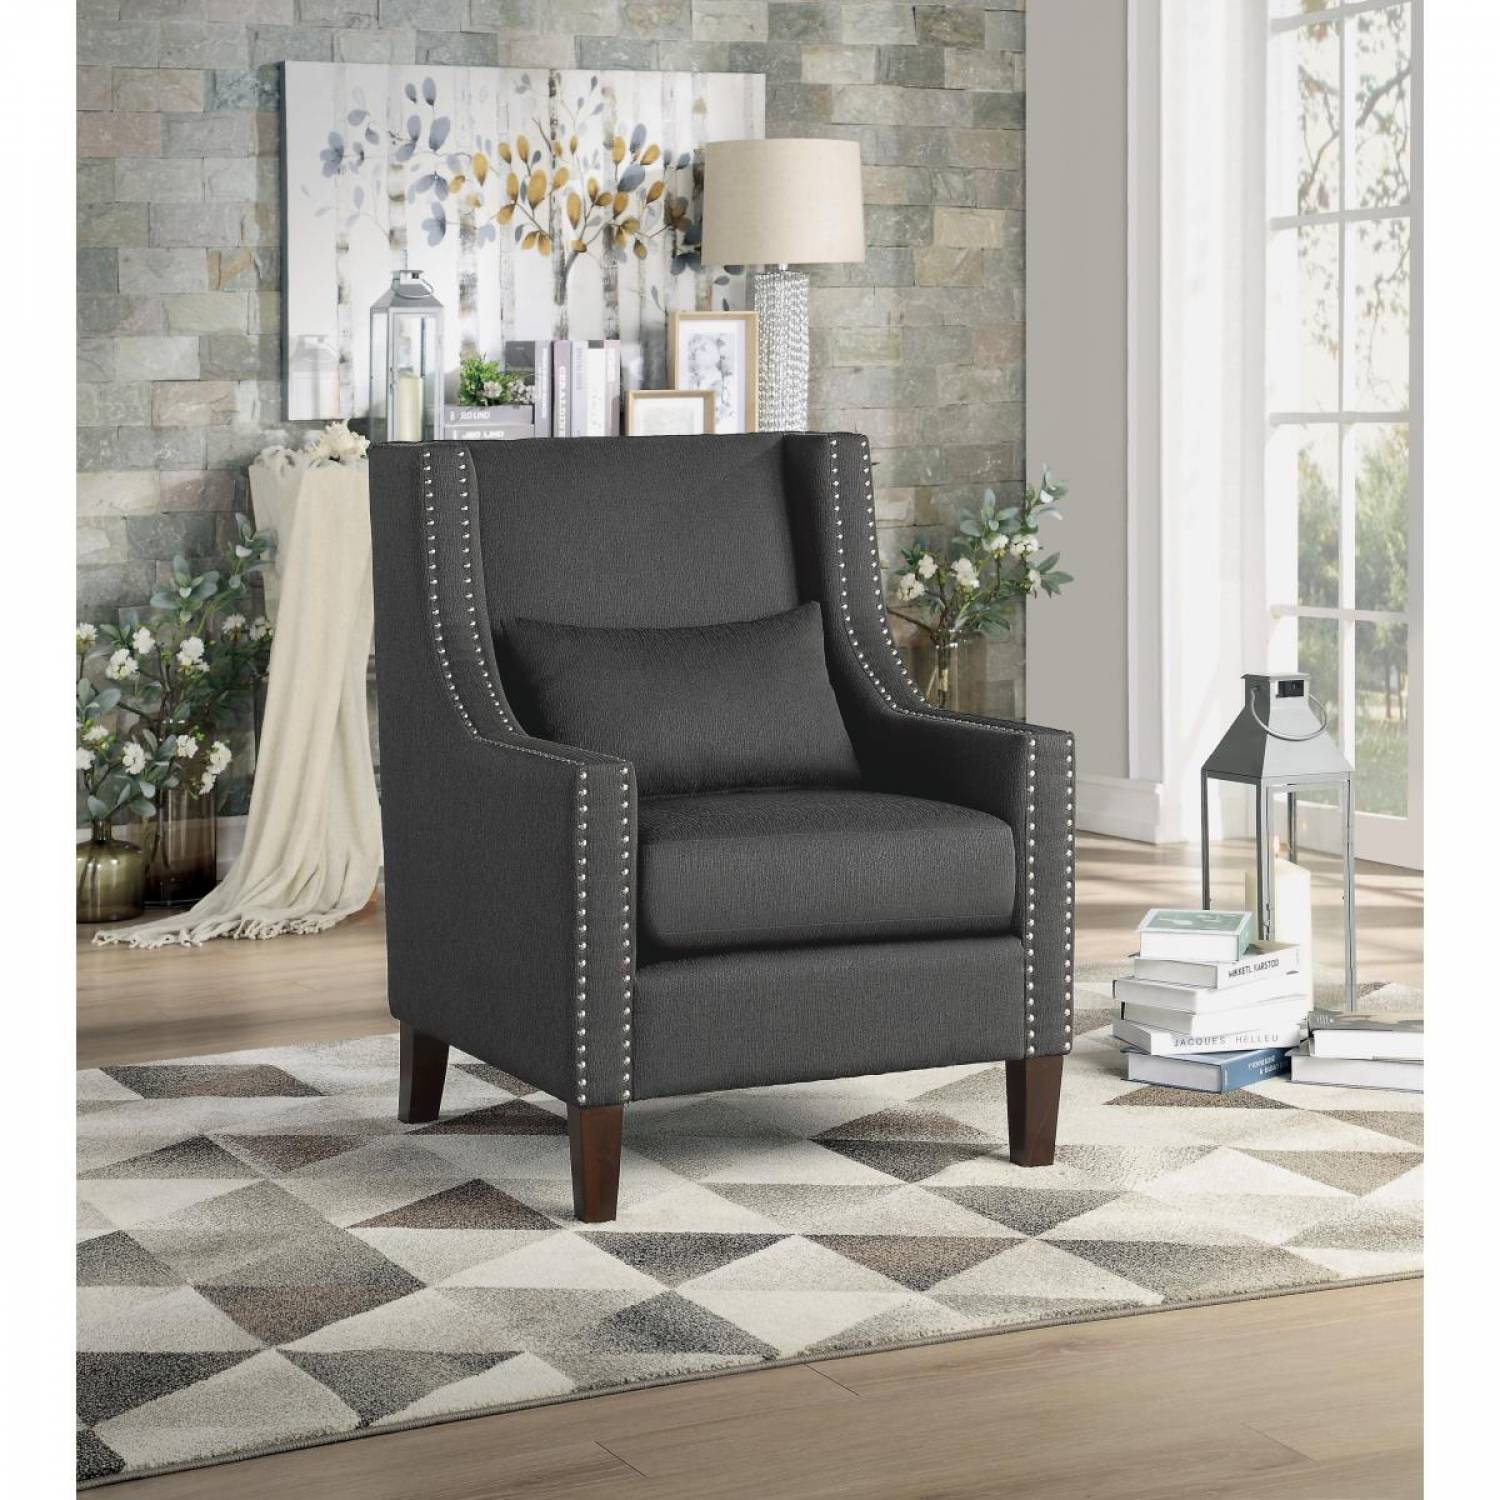 Phenomenal 1114Dg 1 Accent Chair W Kidney Pillow Dark Gray 100 Polyester Pdpeps Interior Chair Design Pdpepsorg